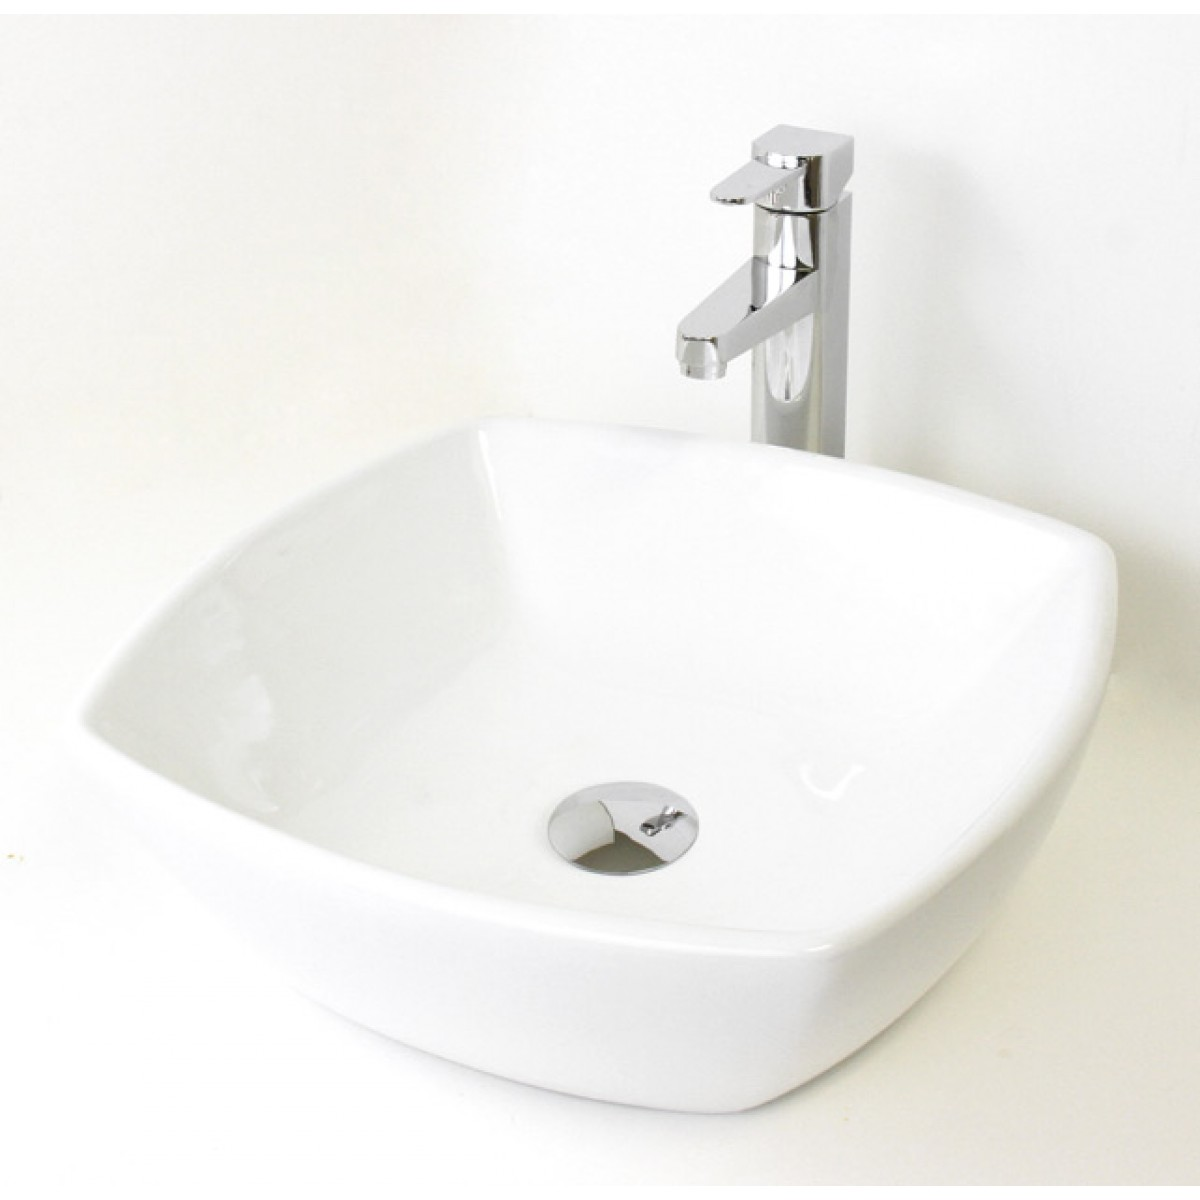 White Black Porcelain Ceramic Countertop Bathroom Vessel Sink 16 1 2 X 5 3 8 Inch